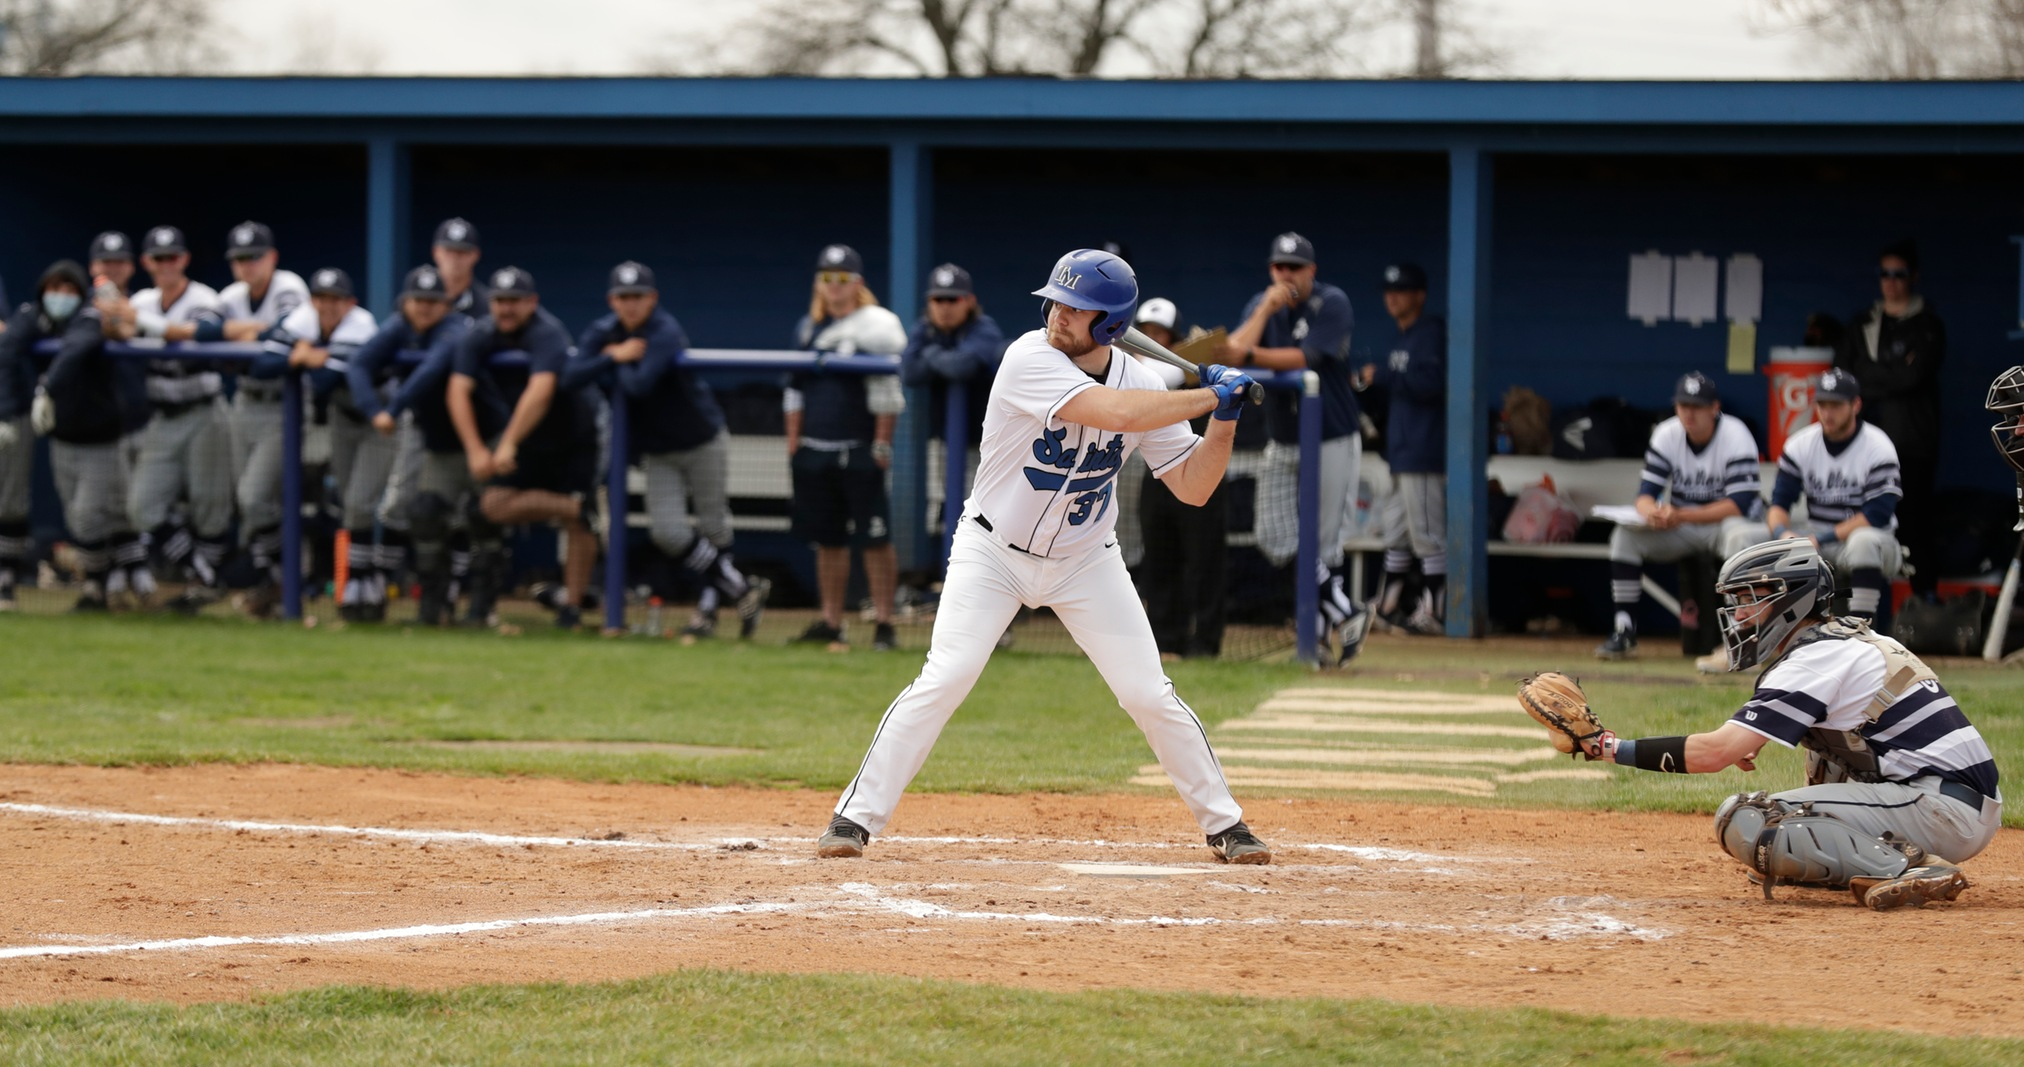 Thomas More Falls to Wittenberg on Tuesday